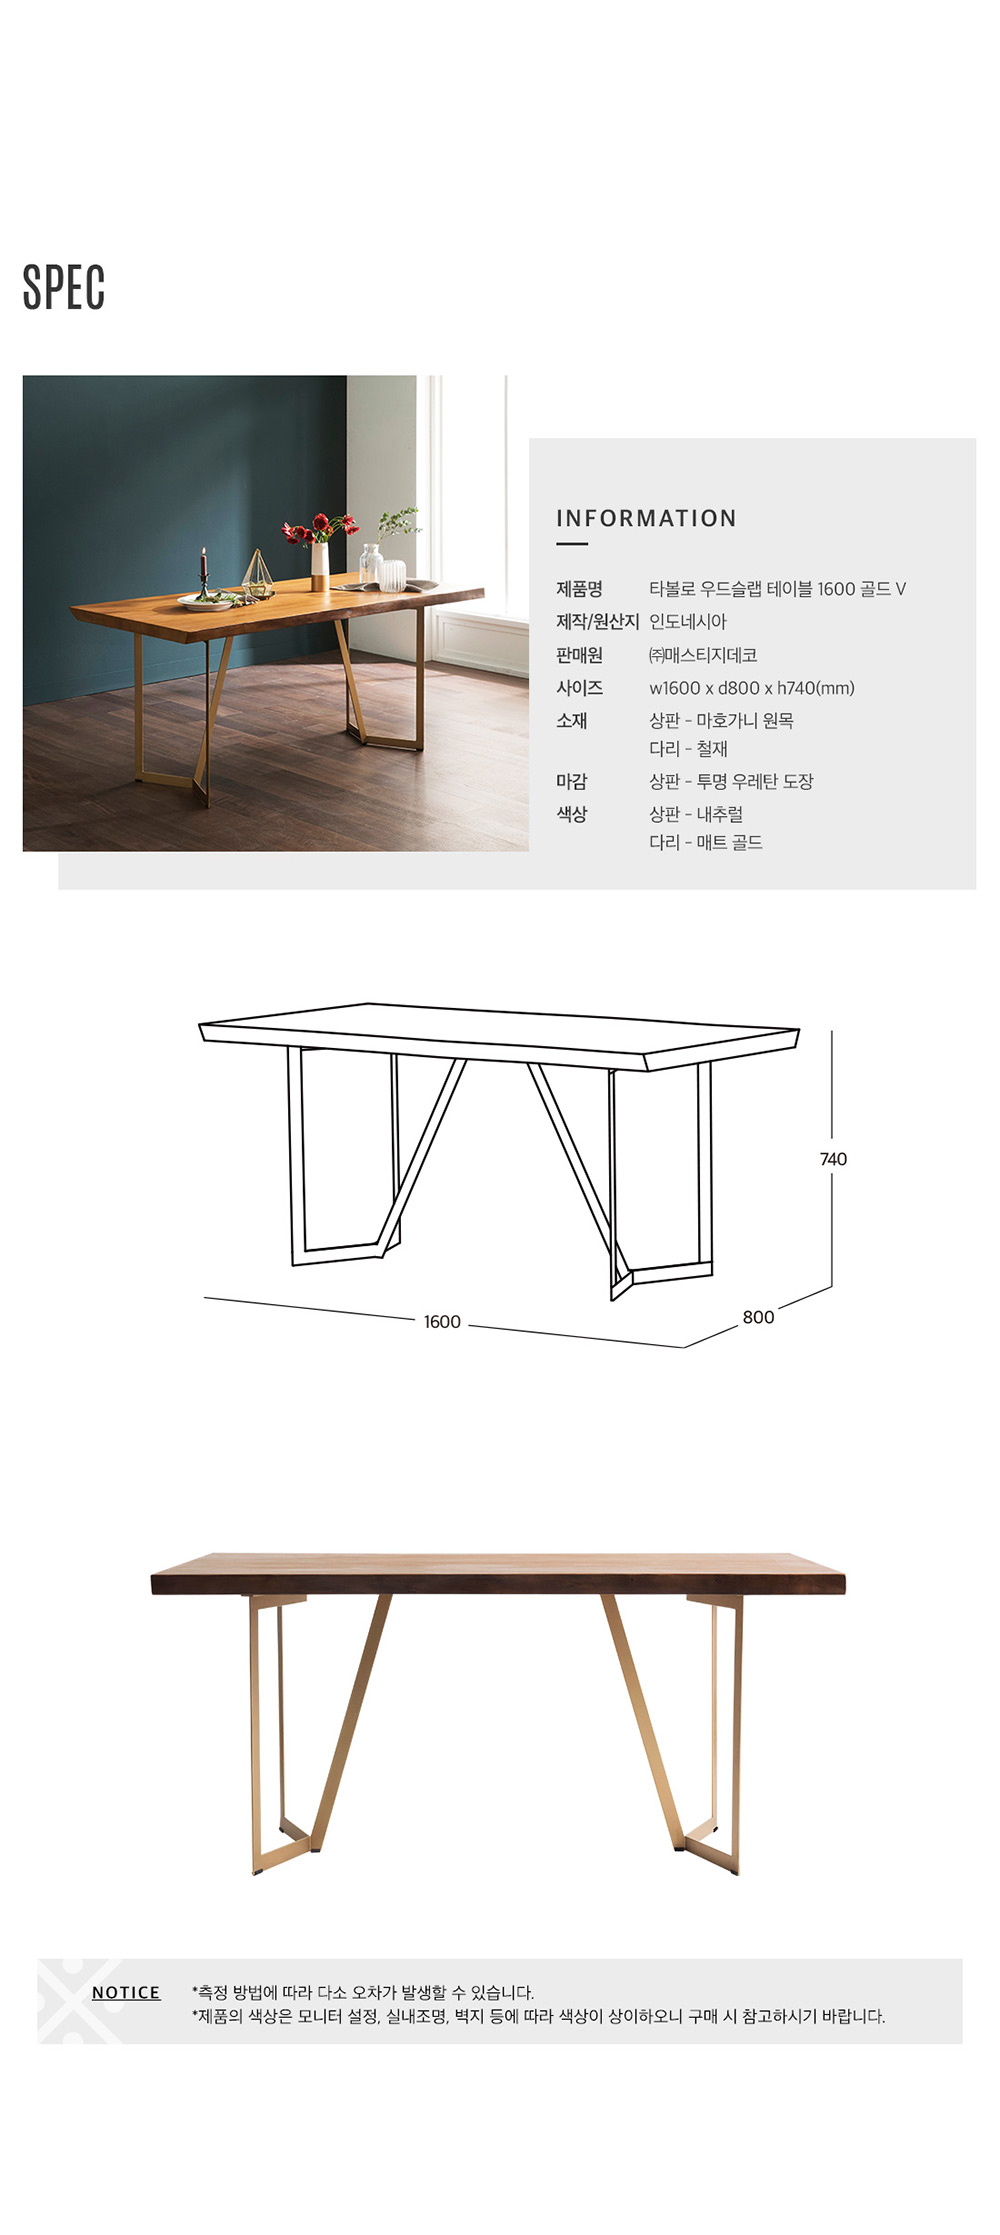 Tavolo_Scandinavian_Natural_Woodslab_Table_with_X_Legs_1600_(Gold)_Singapore_Specs_by_born_in_colour